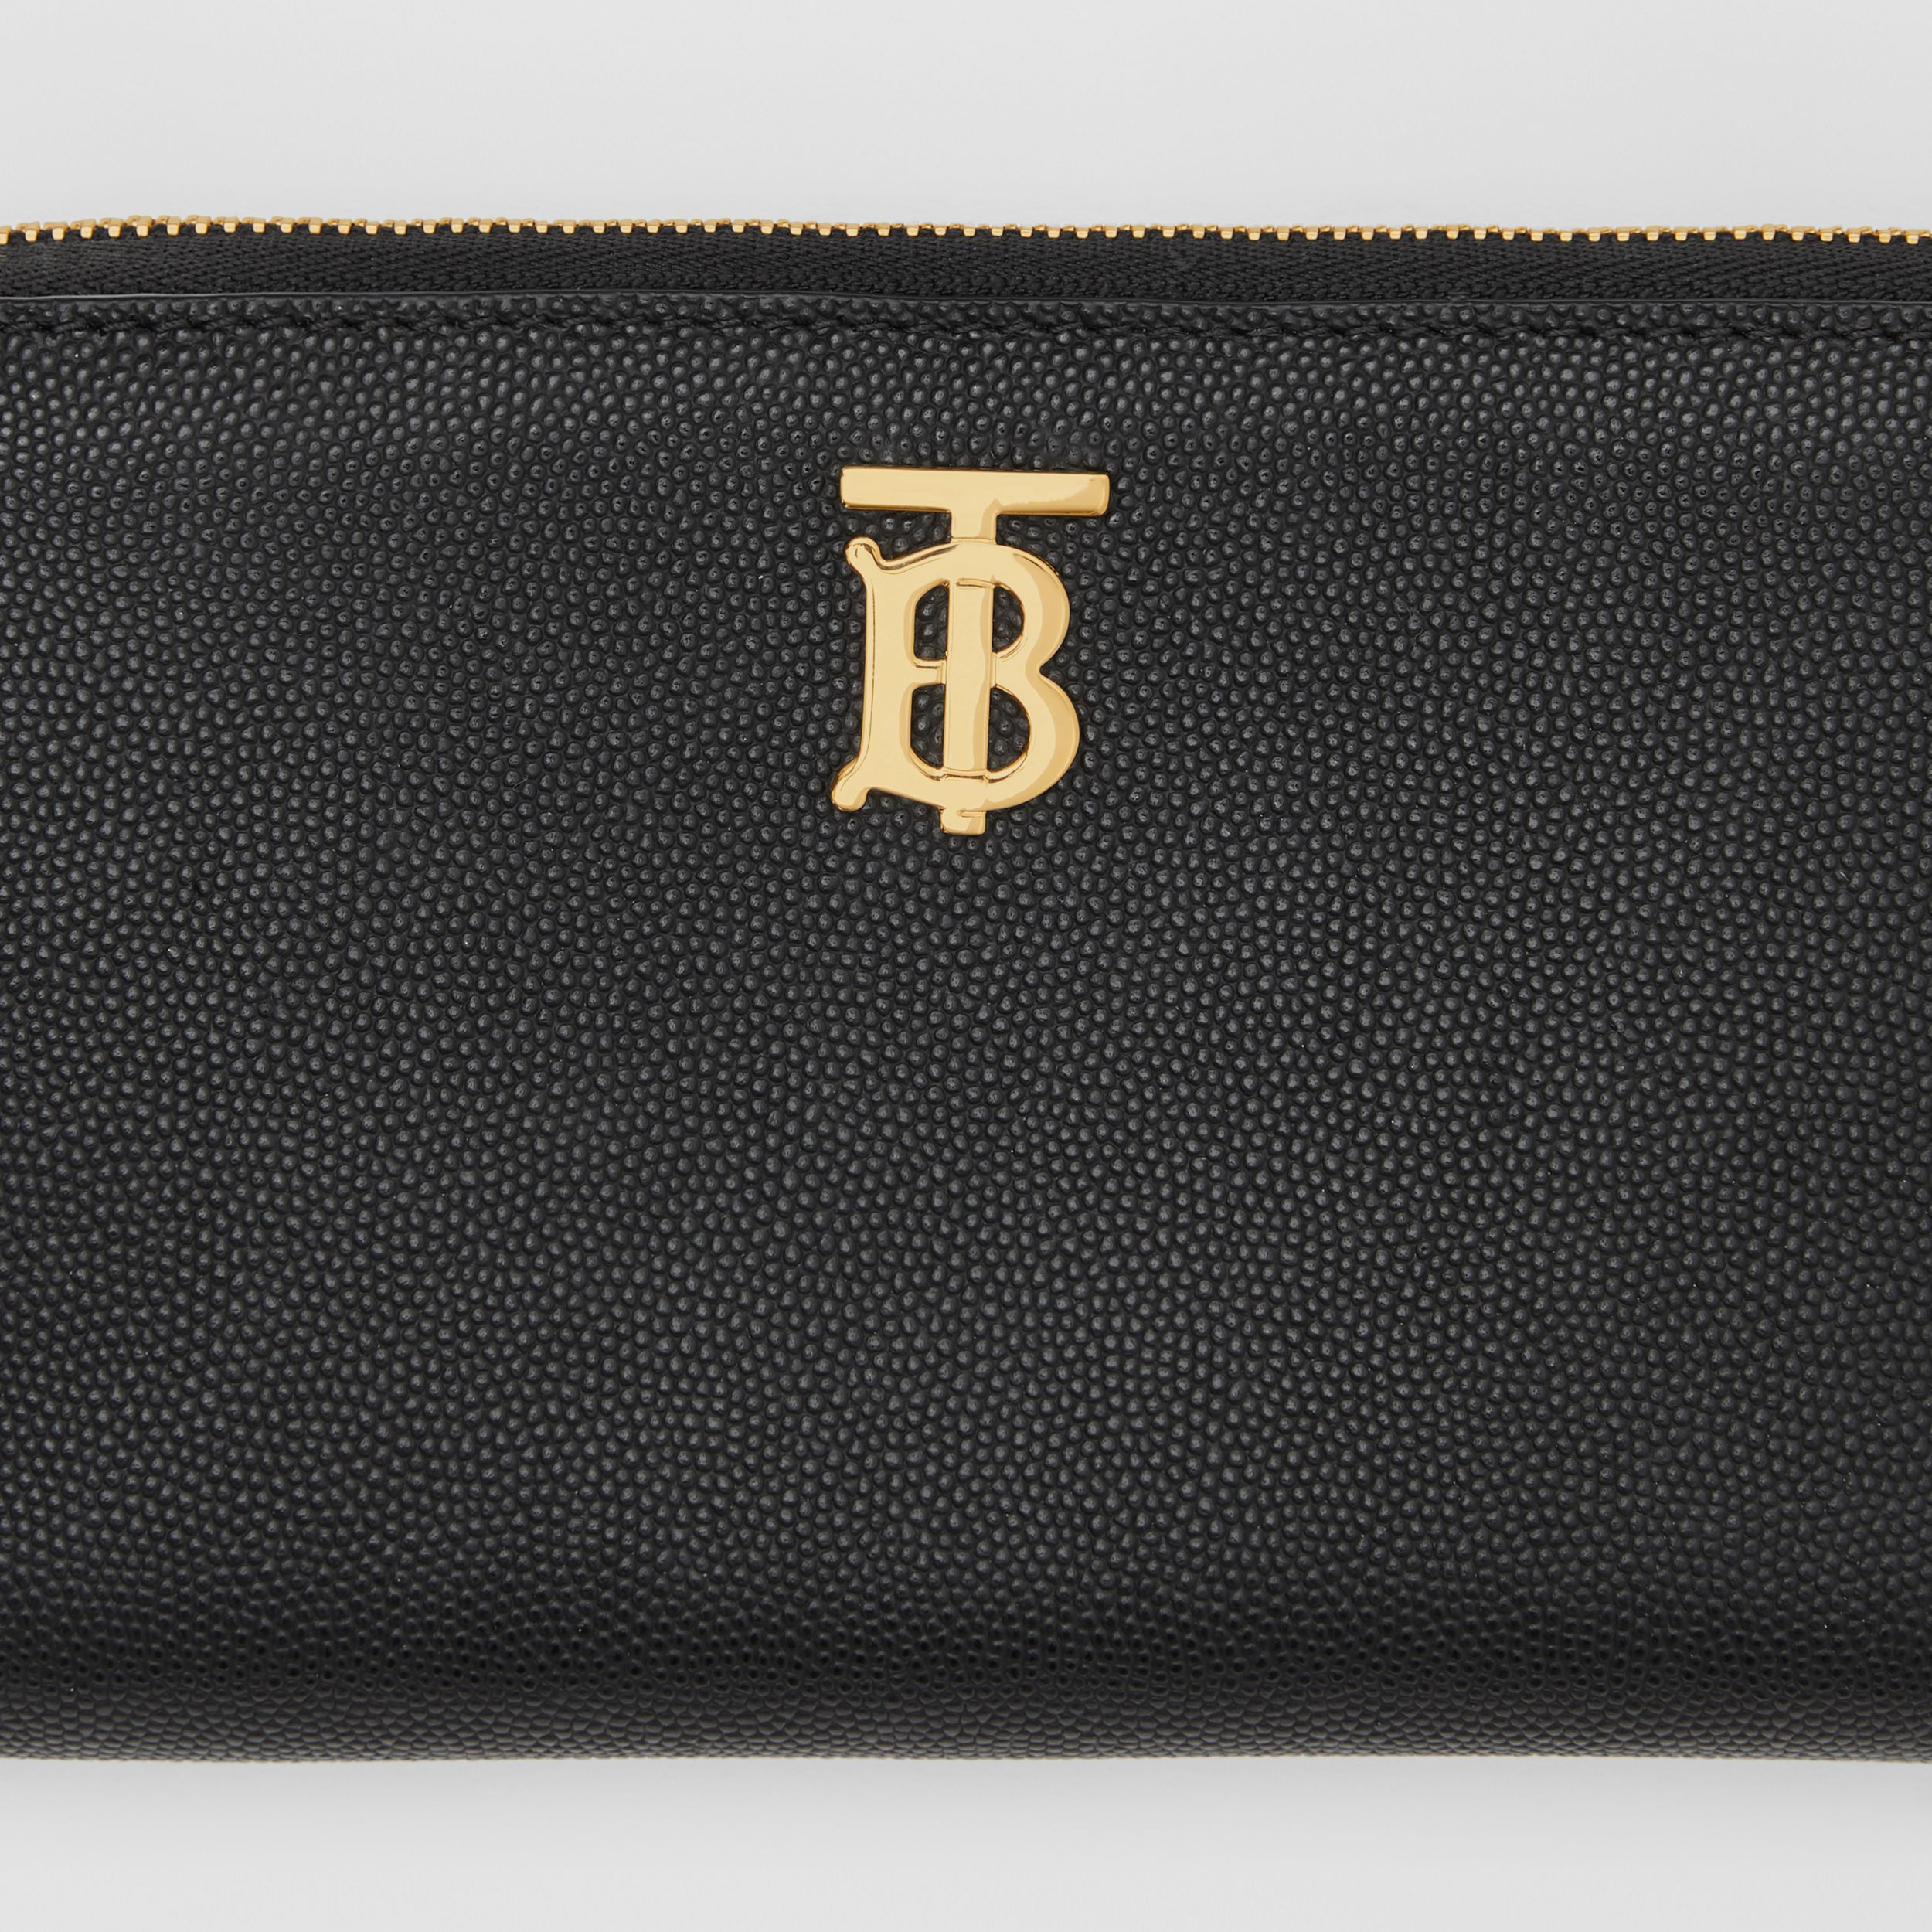 Monogram Motif Grainy Leather Ziparound Wallet in Black - Women | Burberry - 2